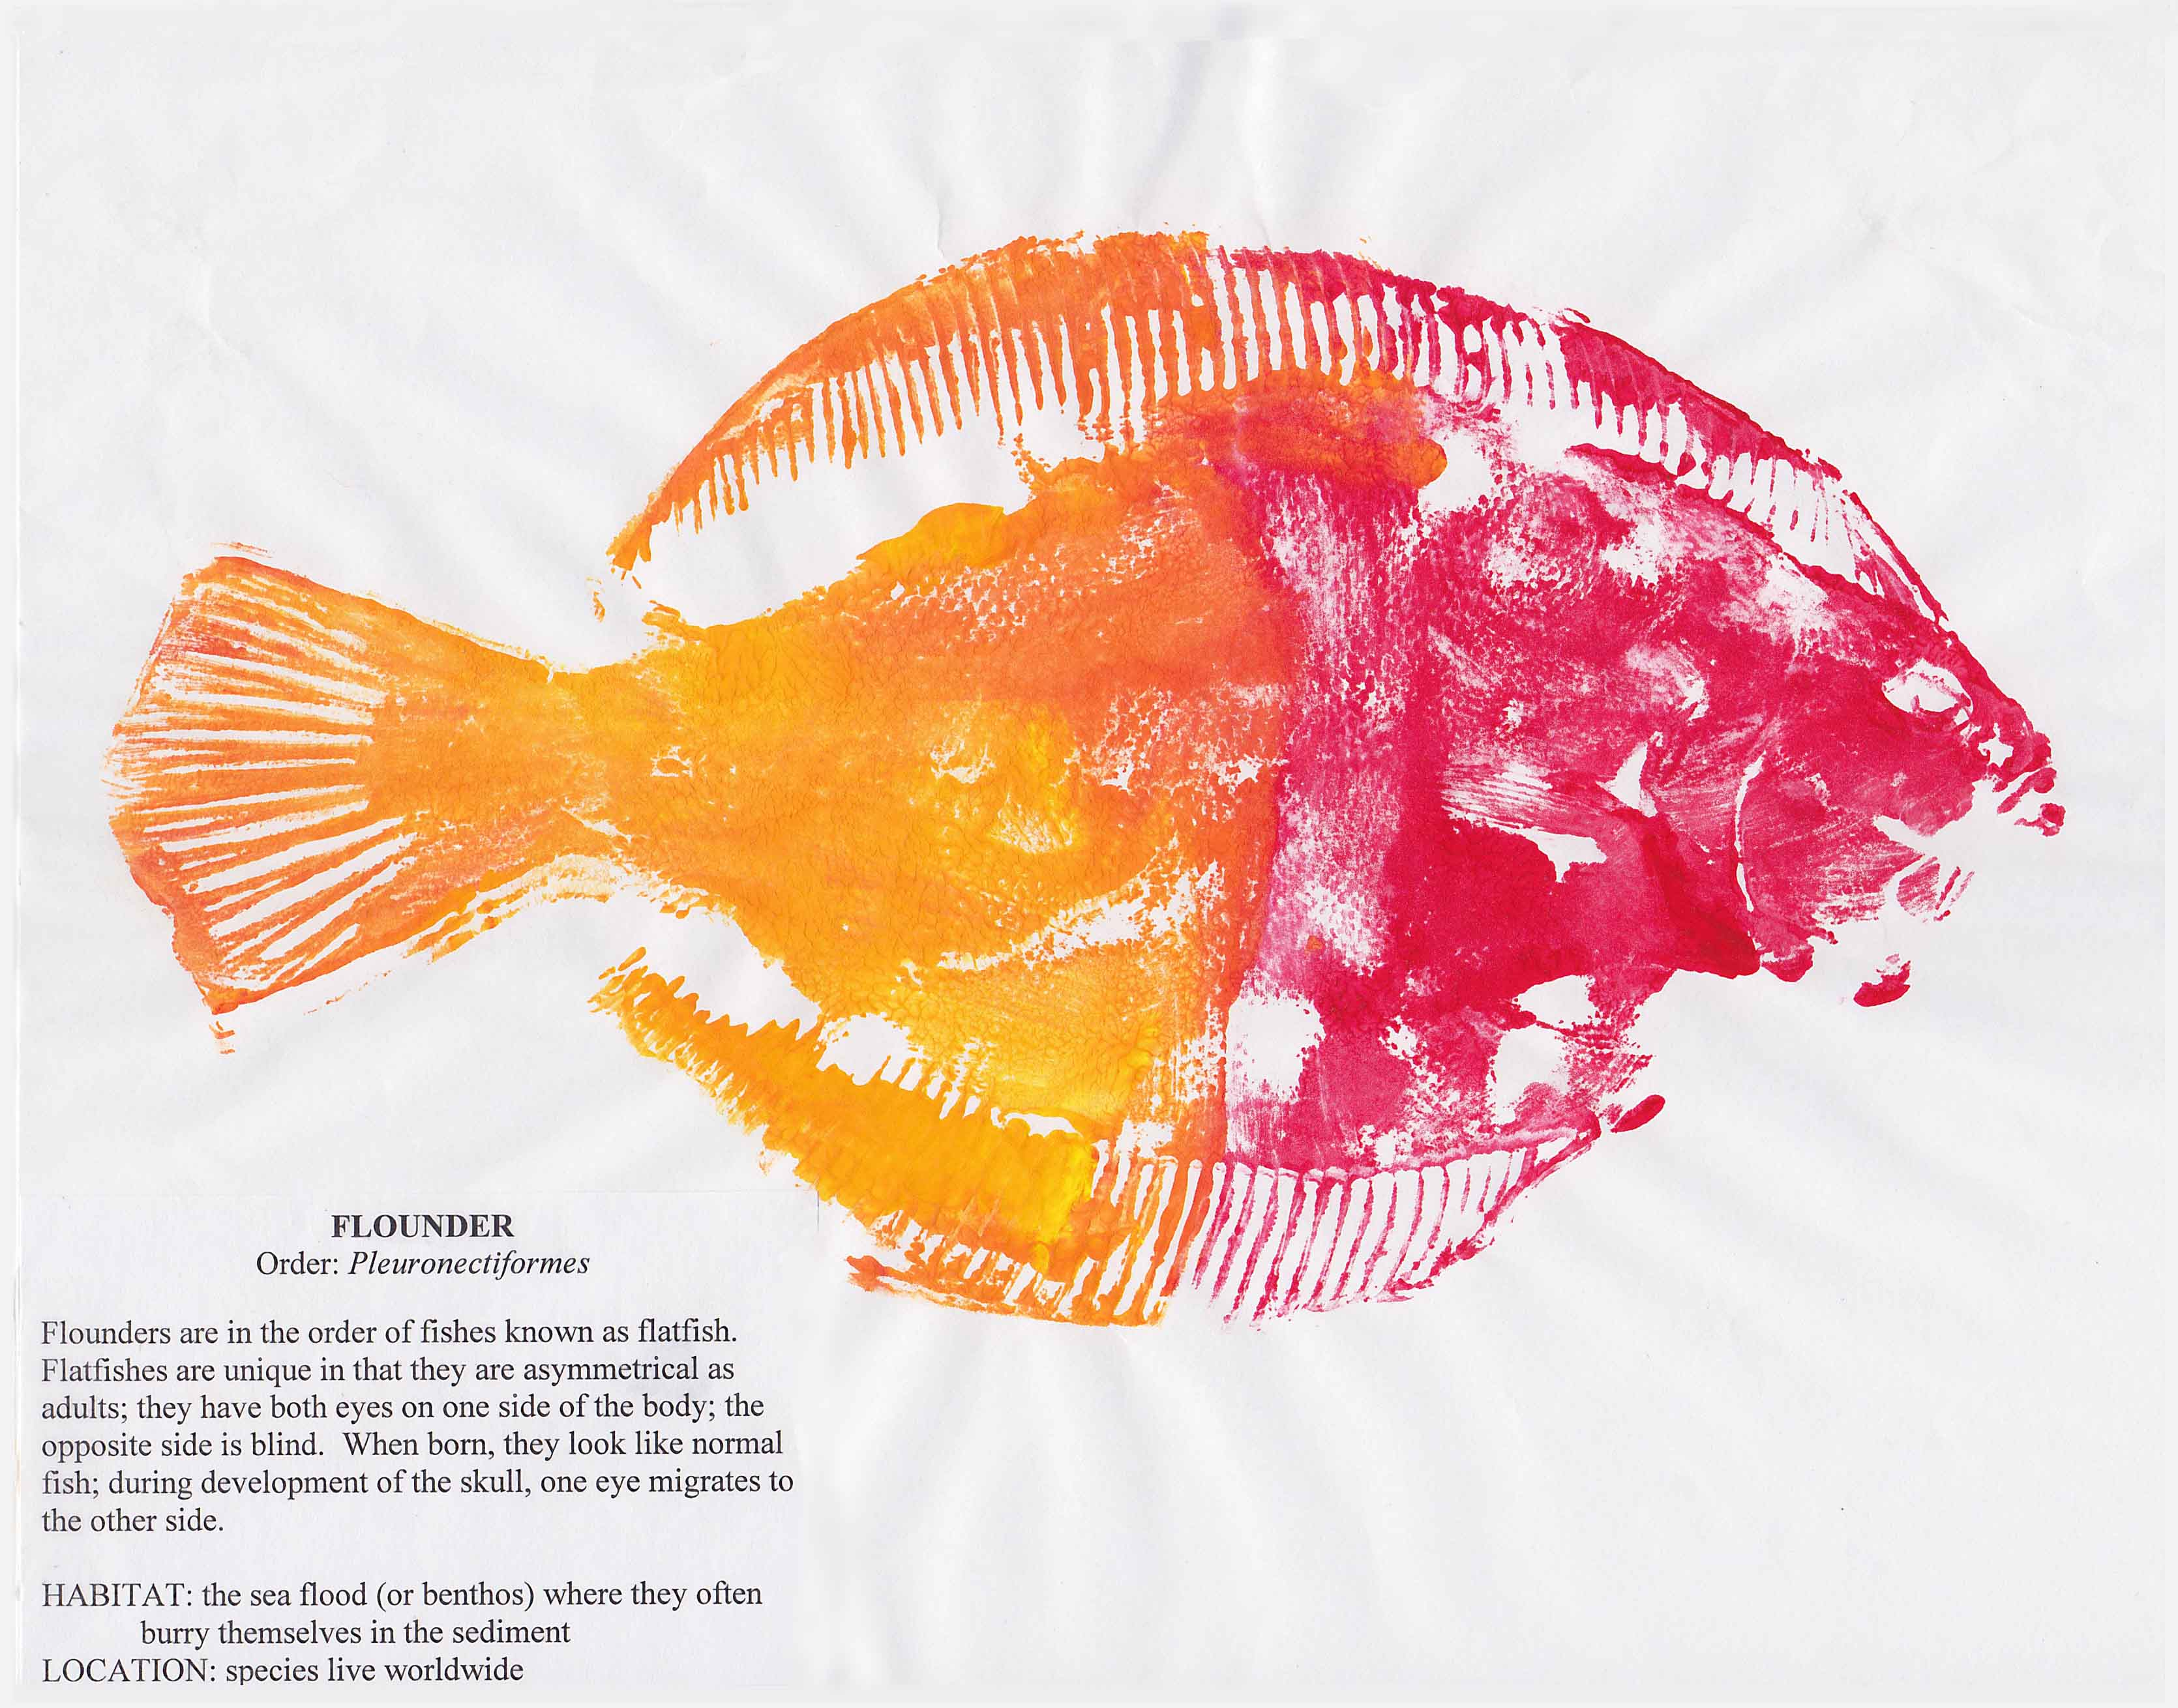 A red and yellow gyotaku-style fish print of a flounder<div class='credit'><strong>Credit:</strong> A red and yellow gyotaku-style fish print of a flounder</div>